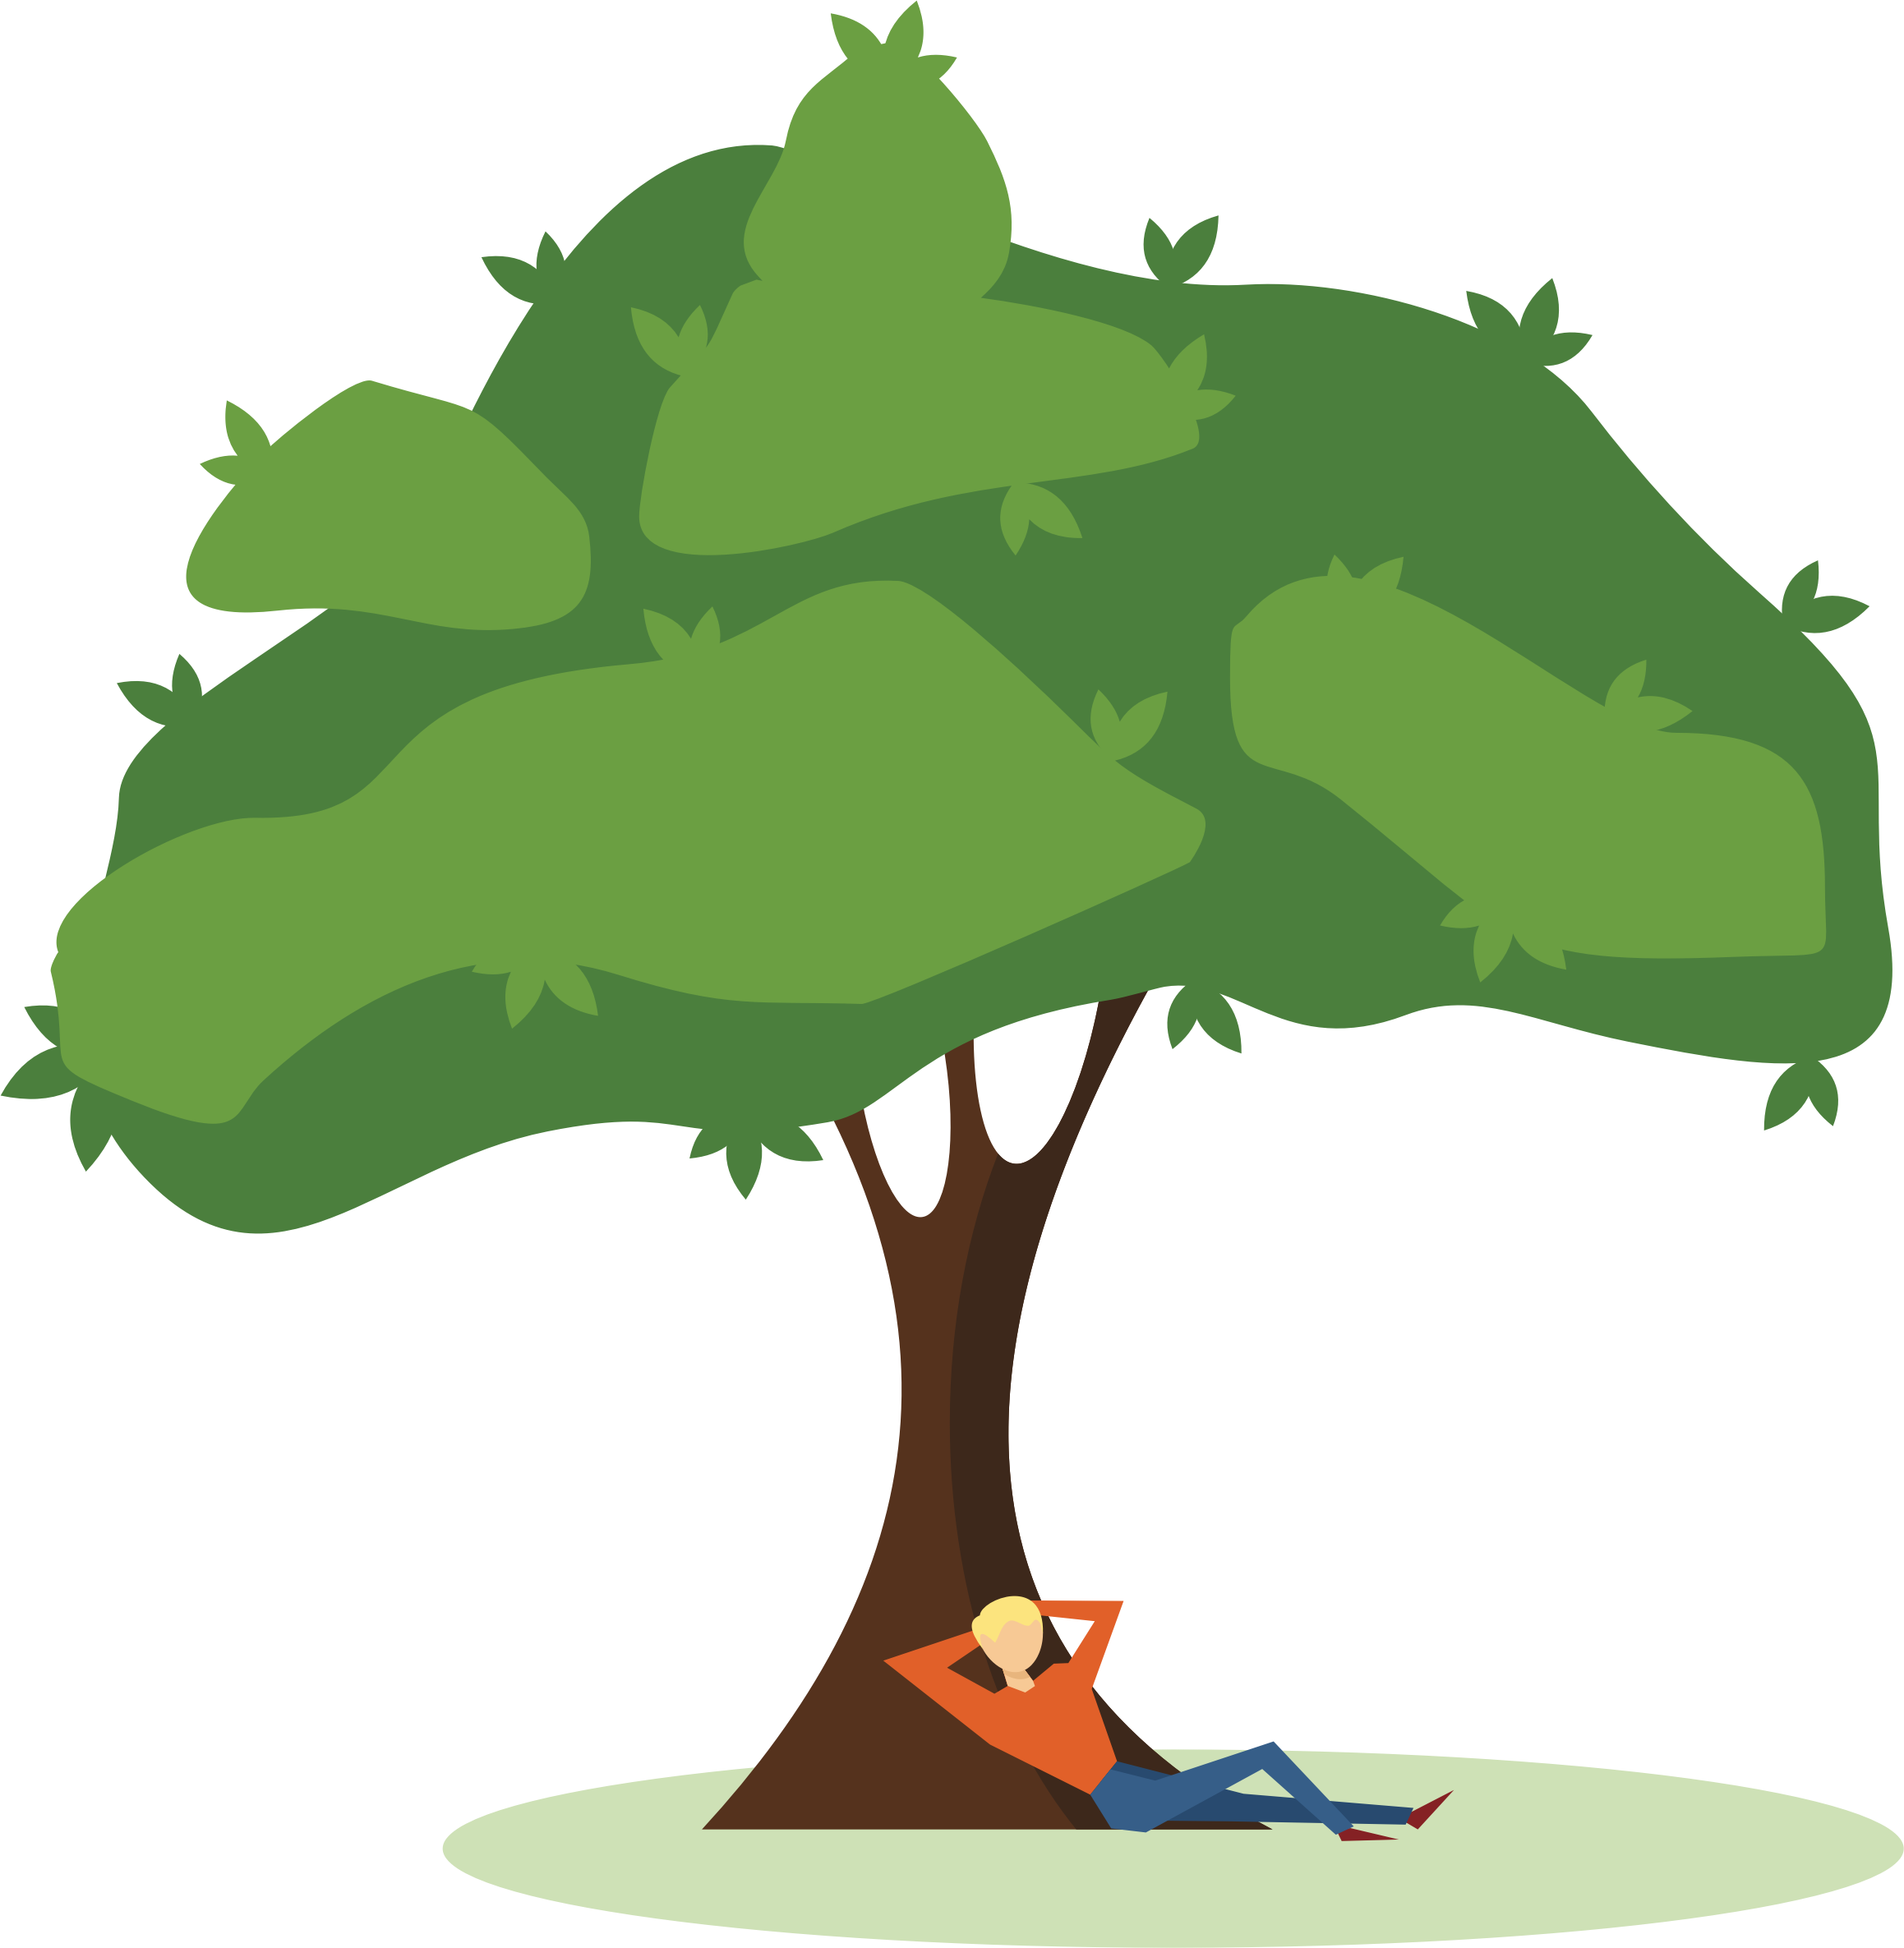 Tree clipart man, Tree man Transparent FREE for download on.